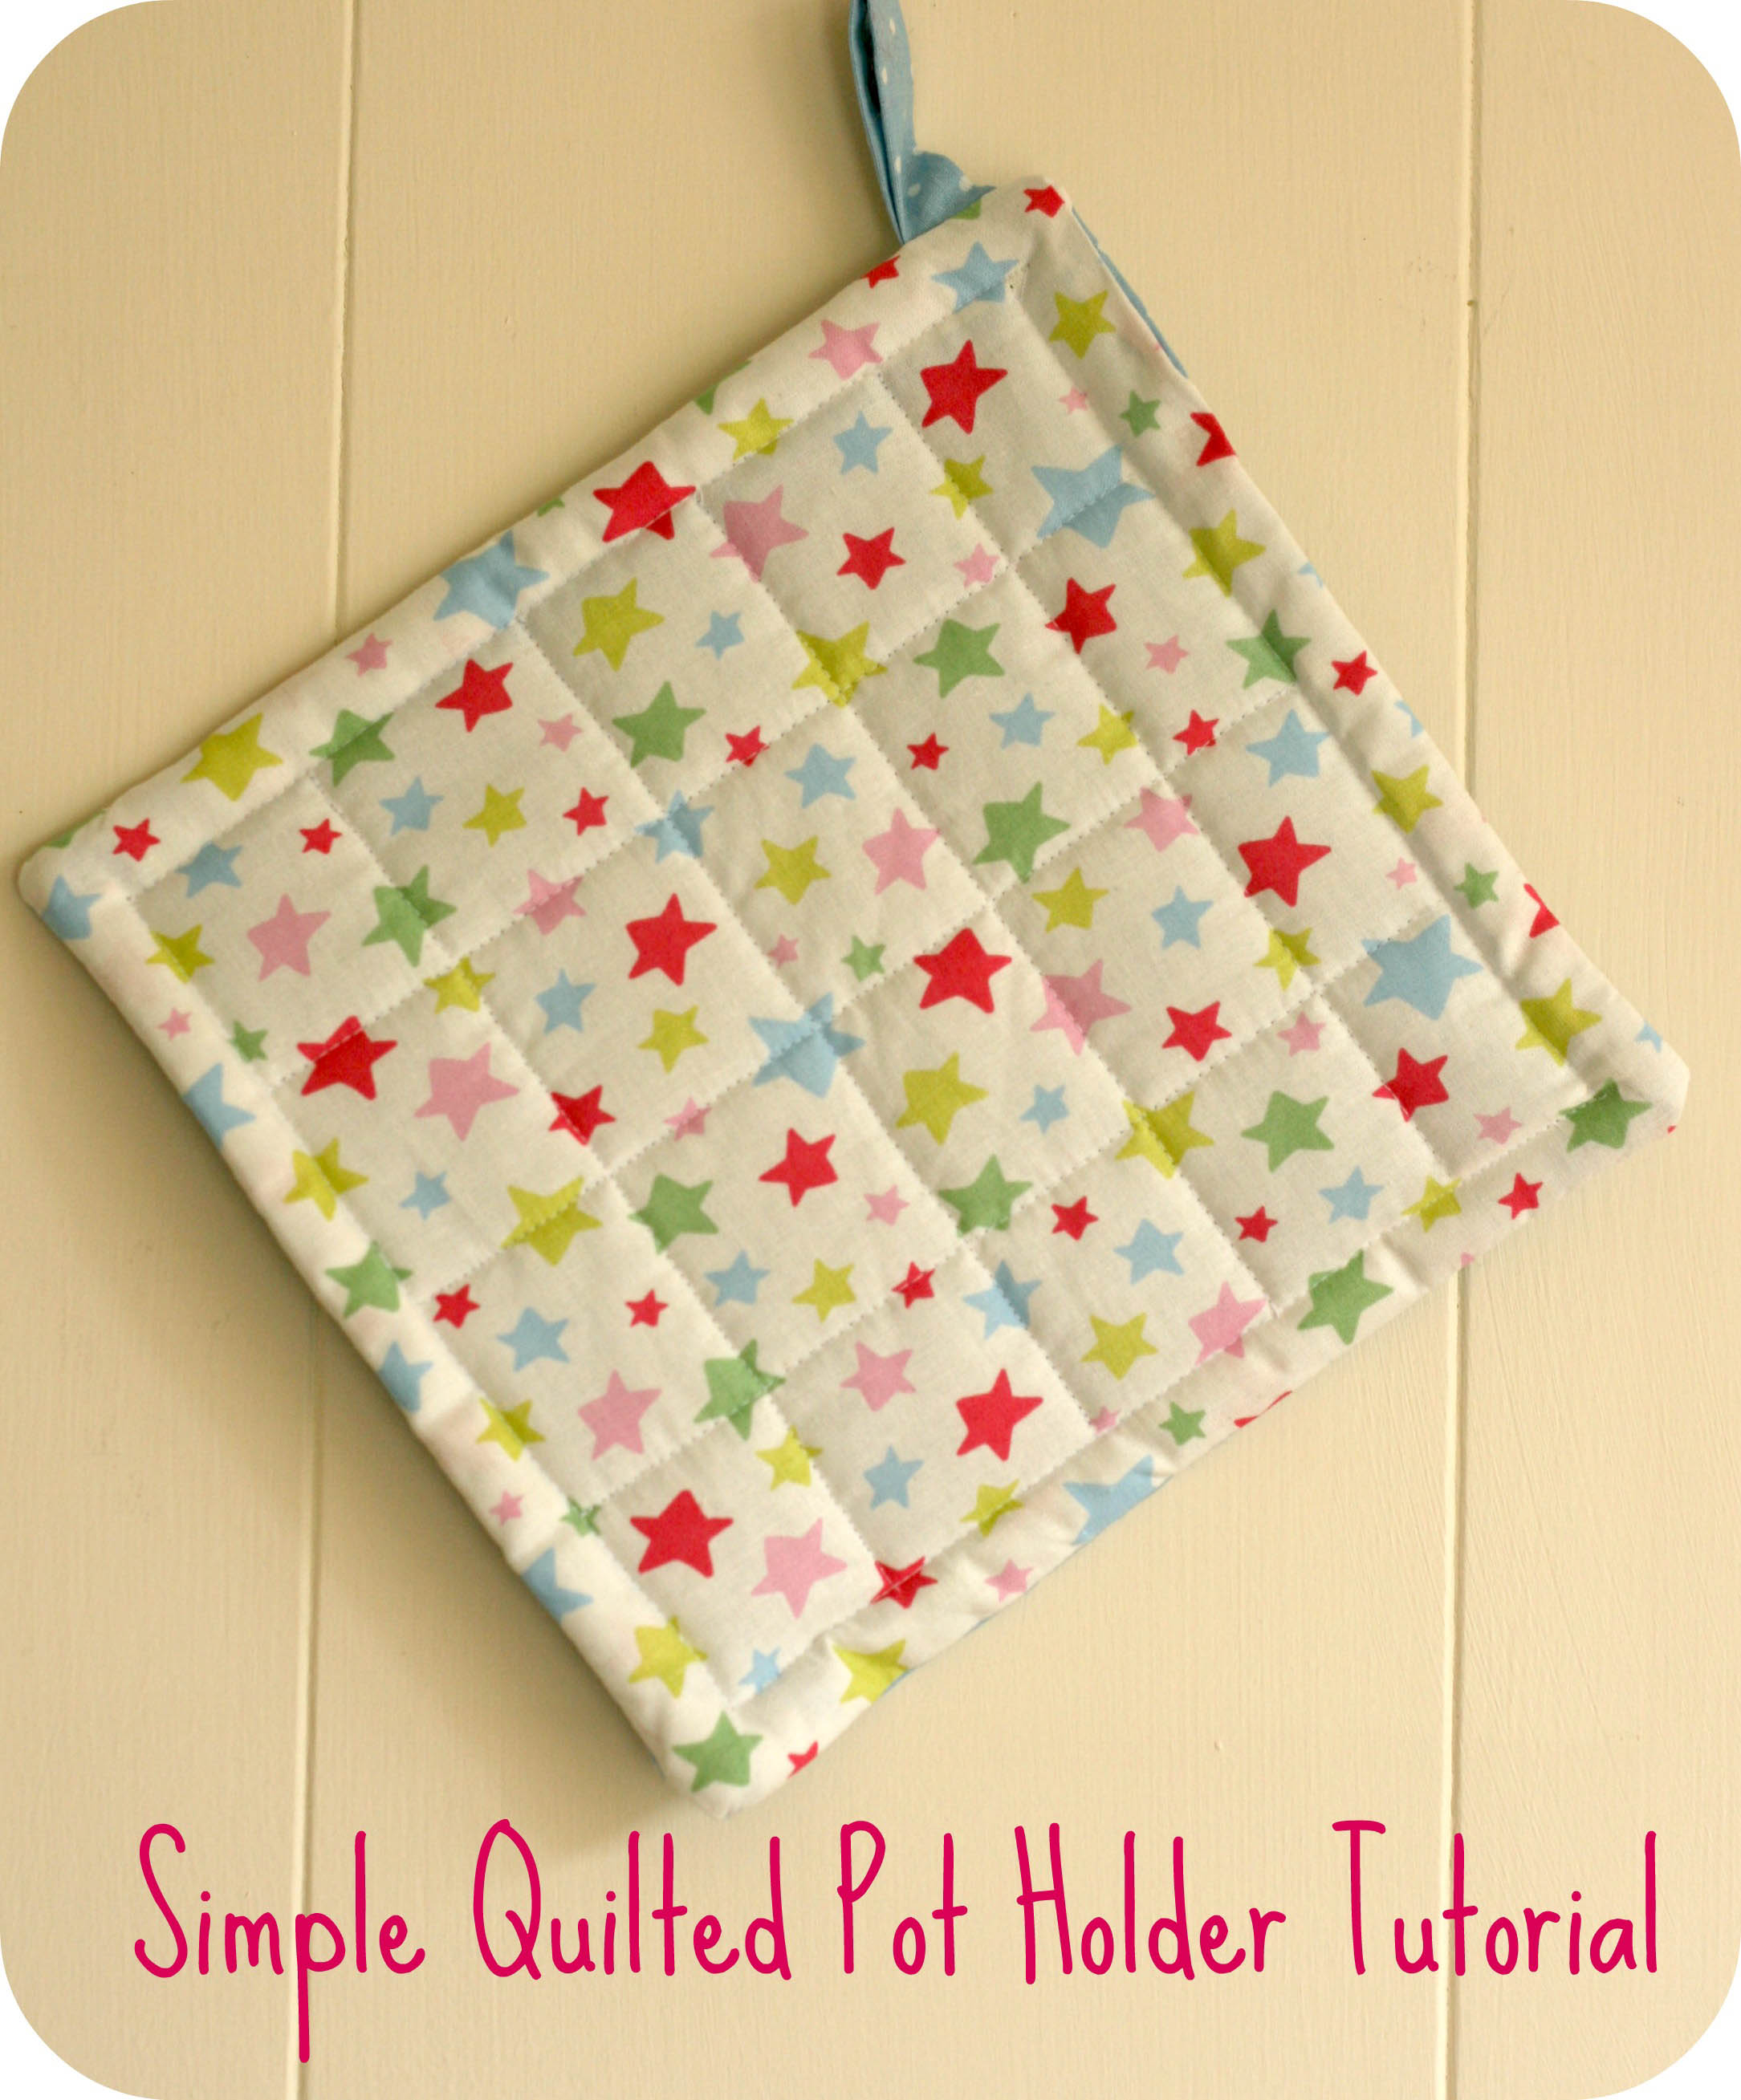 Simple Quilted Pot Holder Tutorial | claireabellemakes